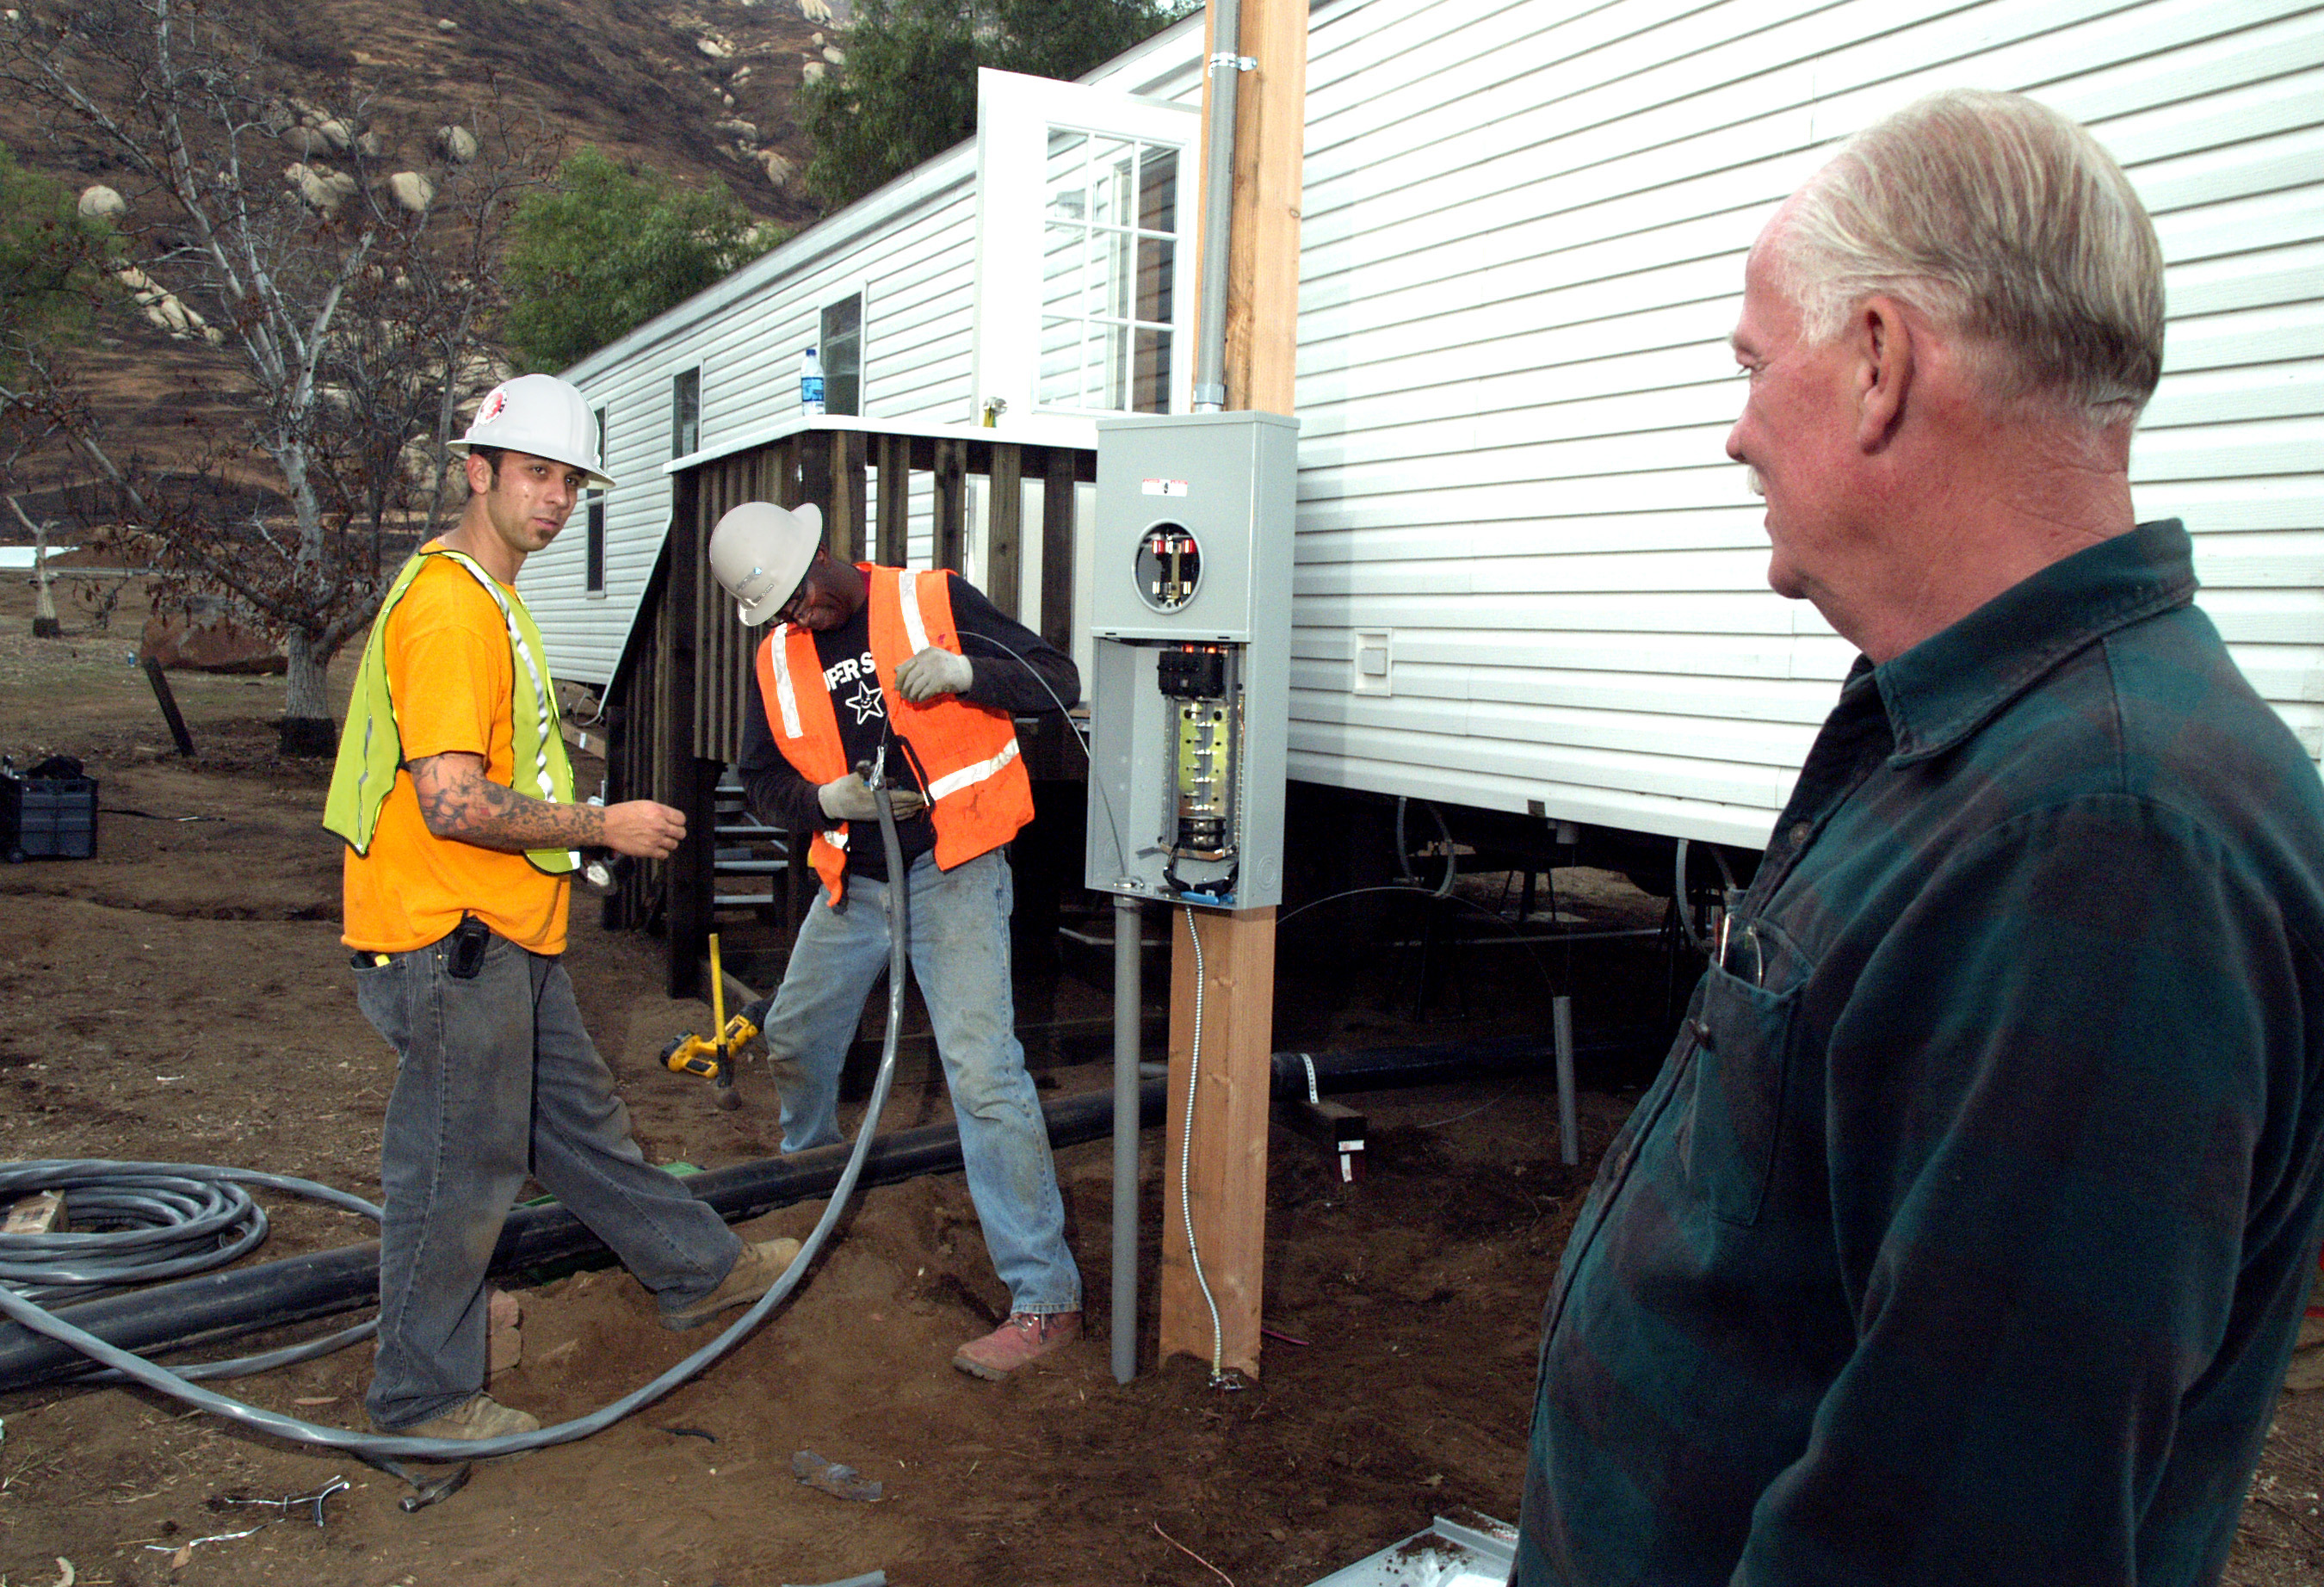 File:FEMA - 33796 - Electricians hook up at mobile home in California.jpg